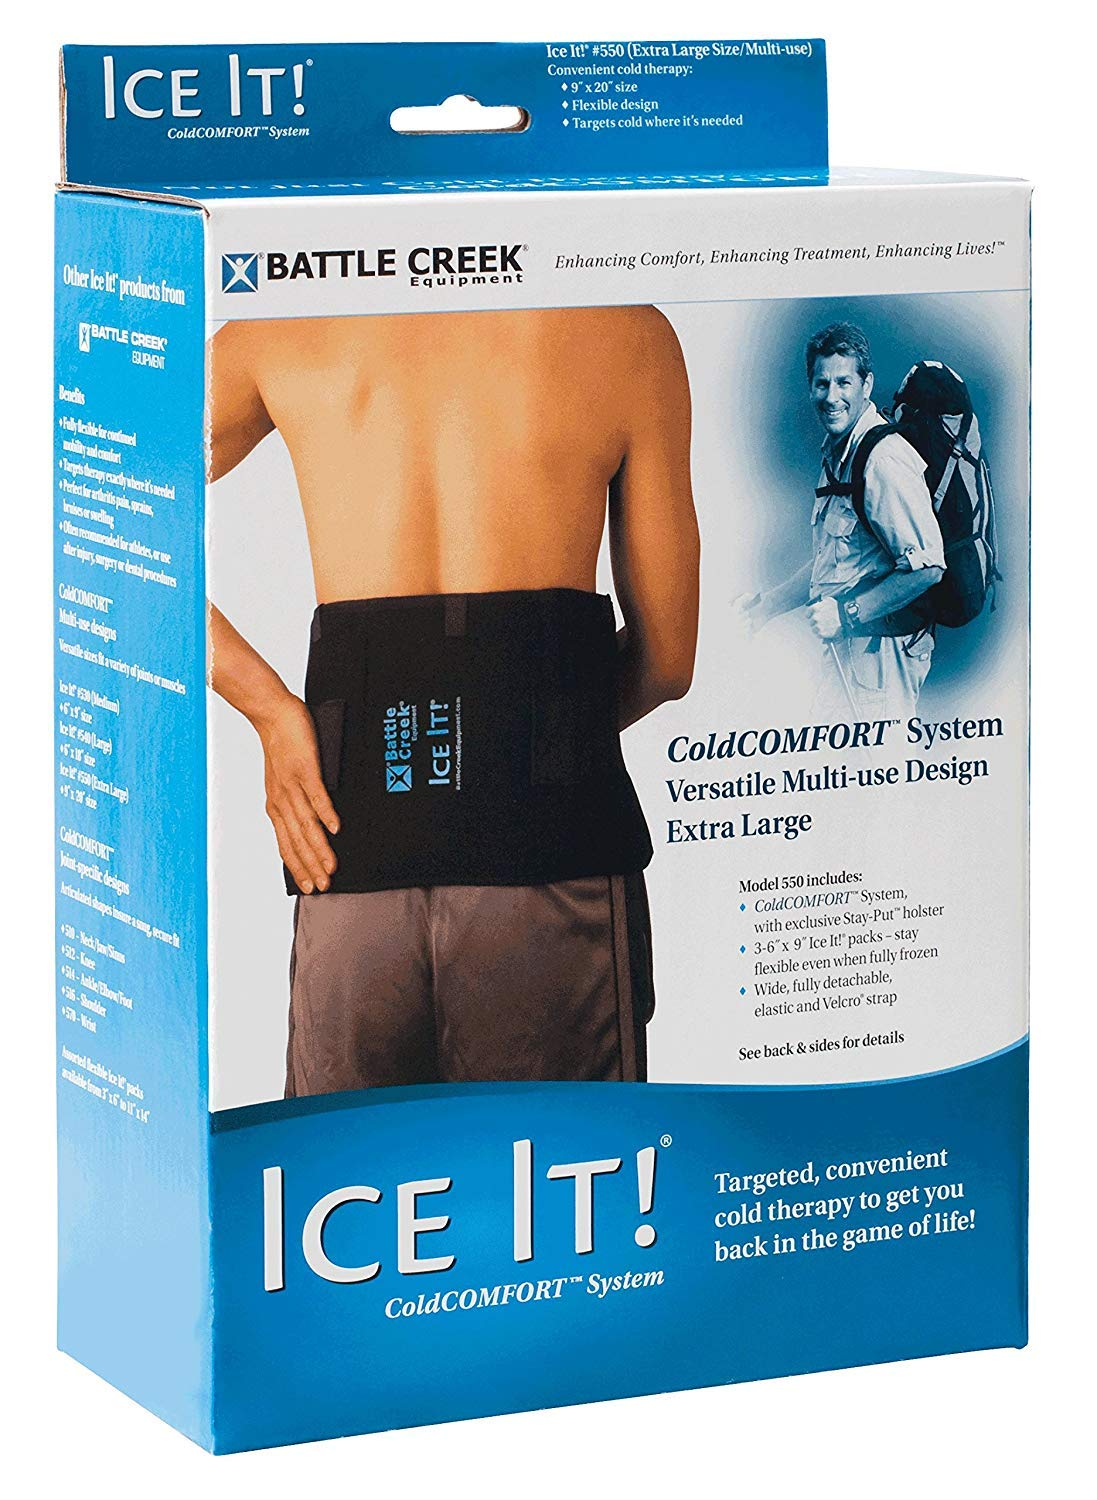 Battle Creek Sales for sale Ice It ® ColdCOMFORT™ Long Beach Mall - Extra-Large System